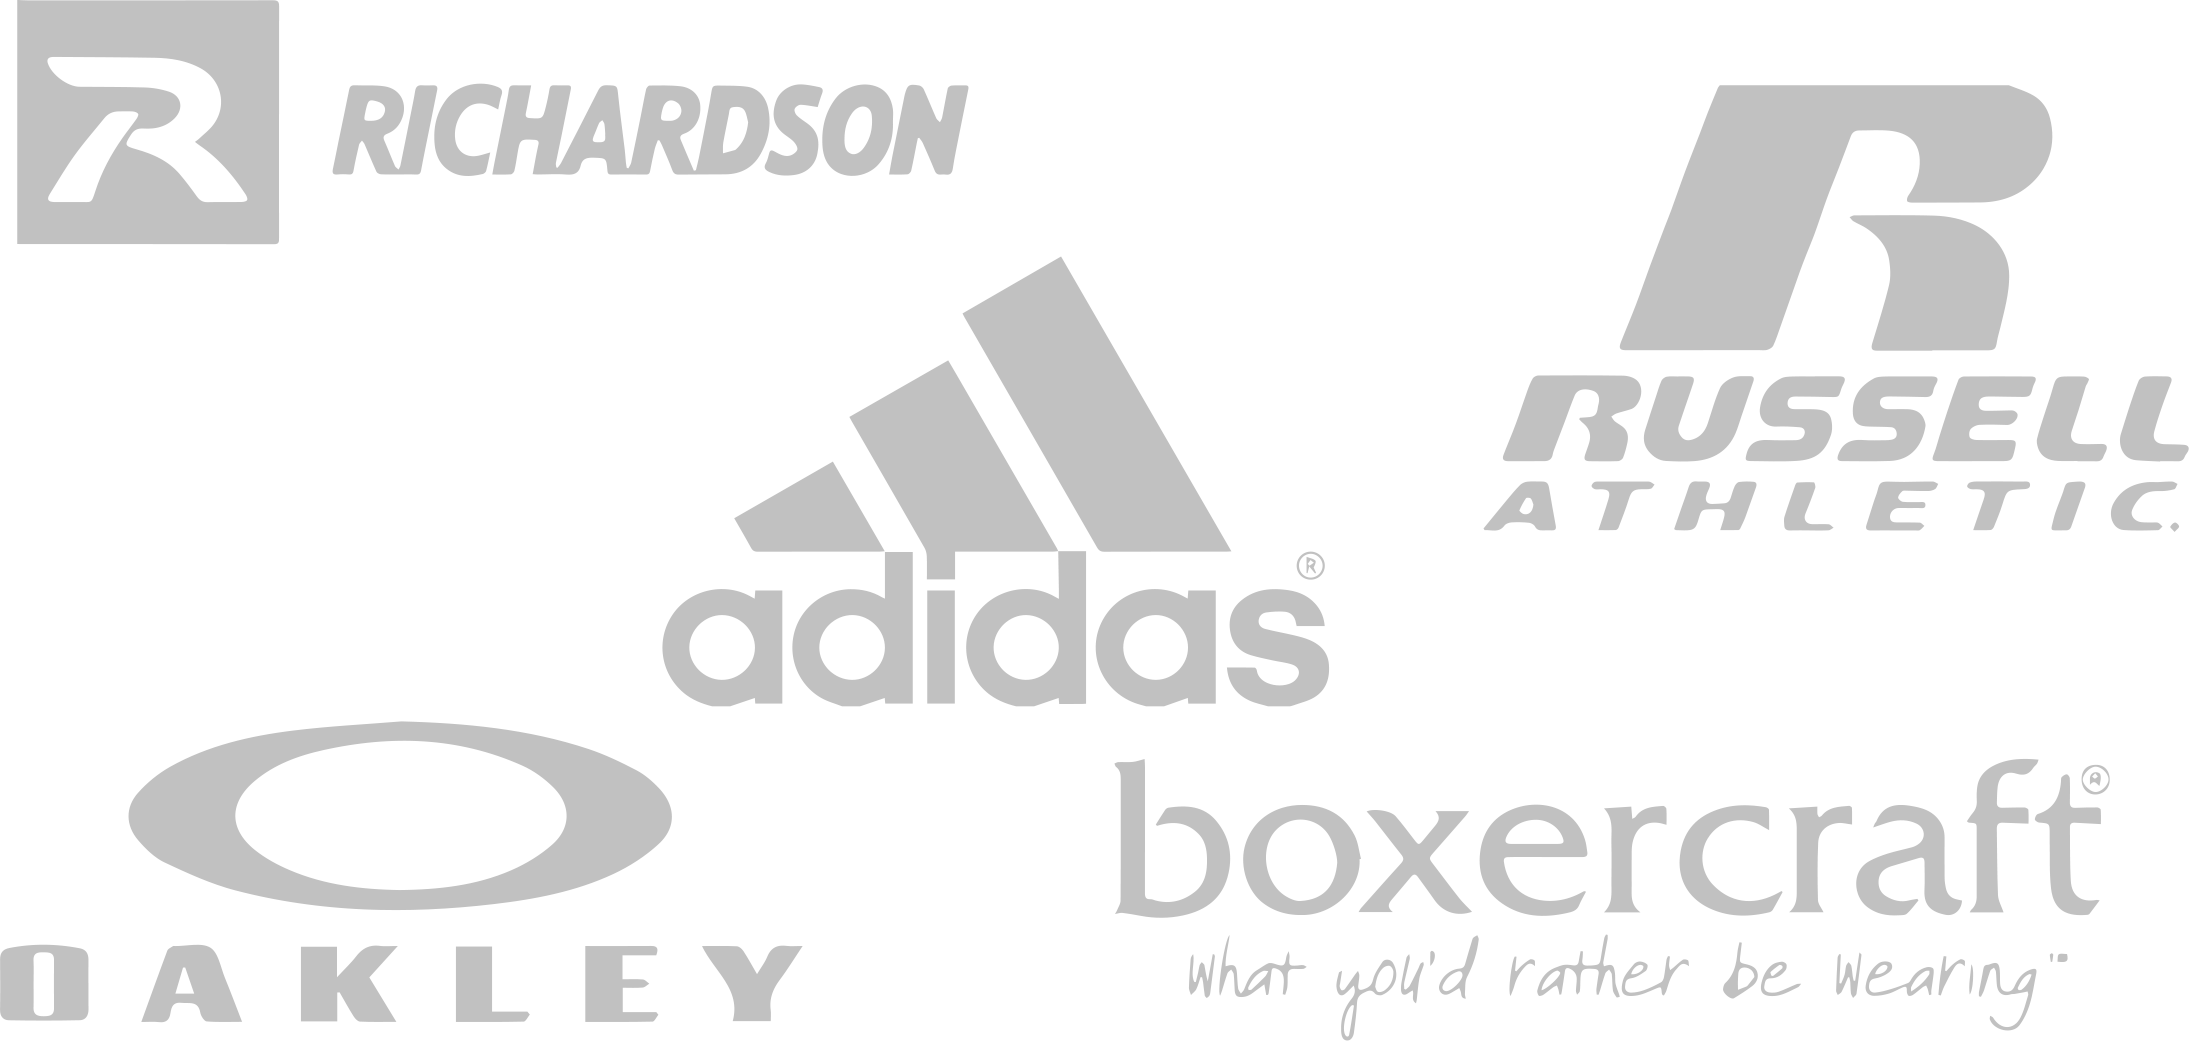 S&S Activewear website brand logos1.png